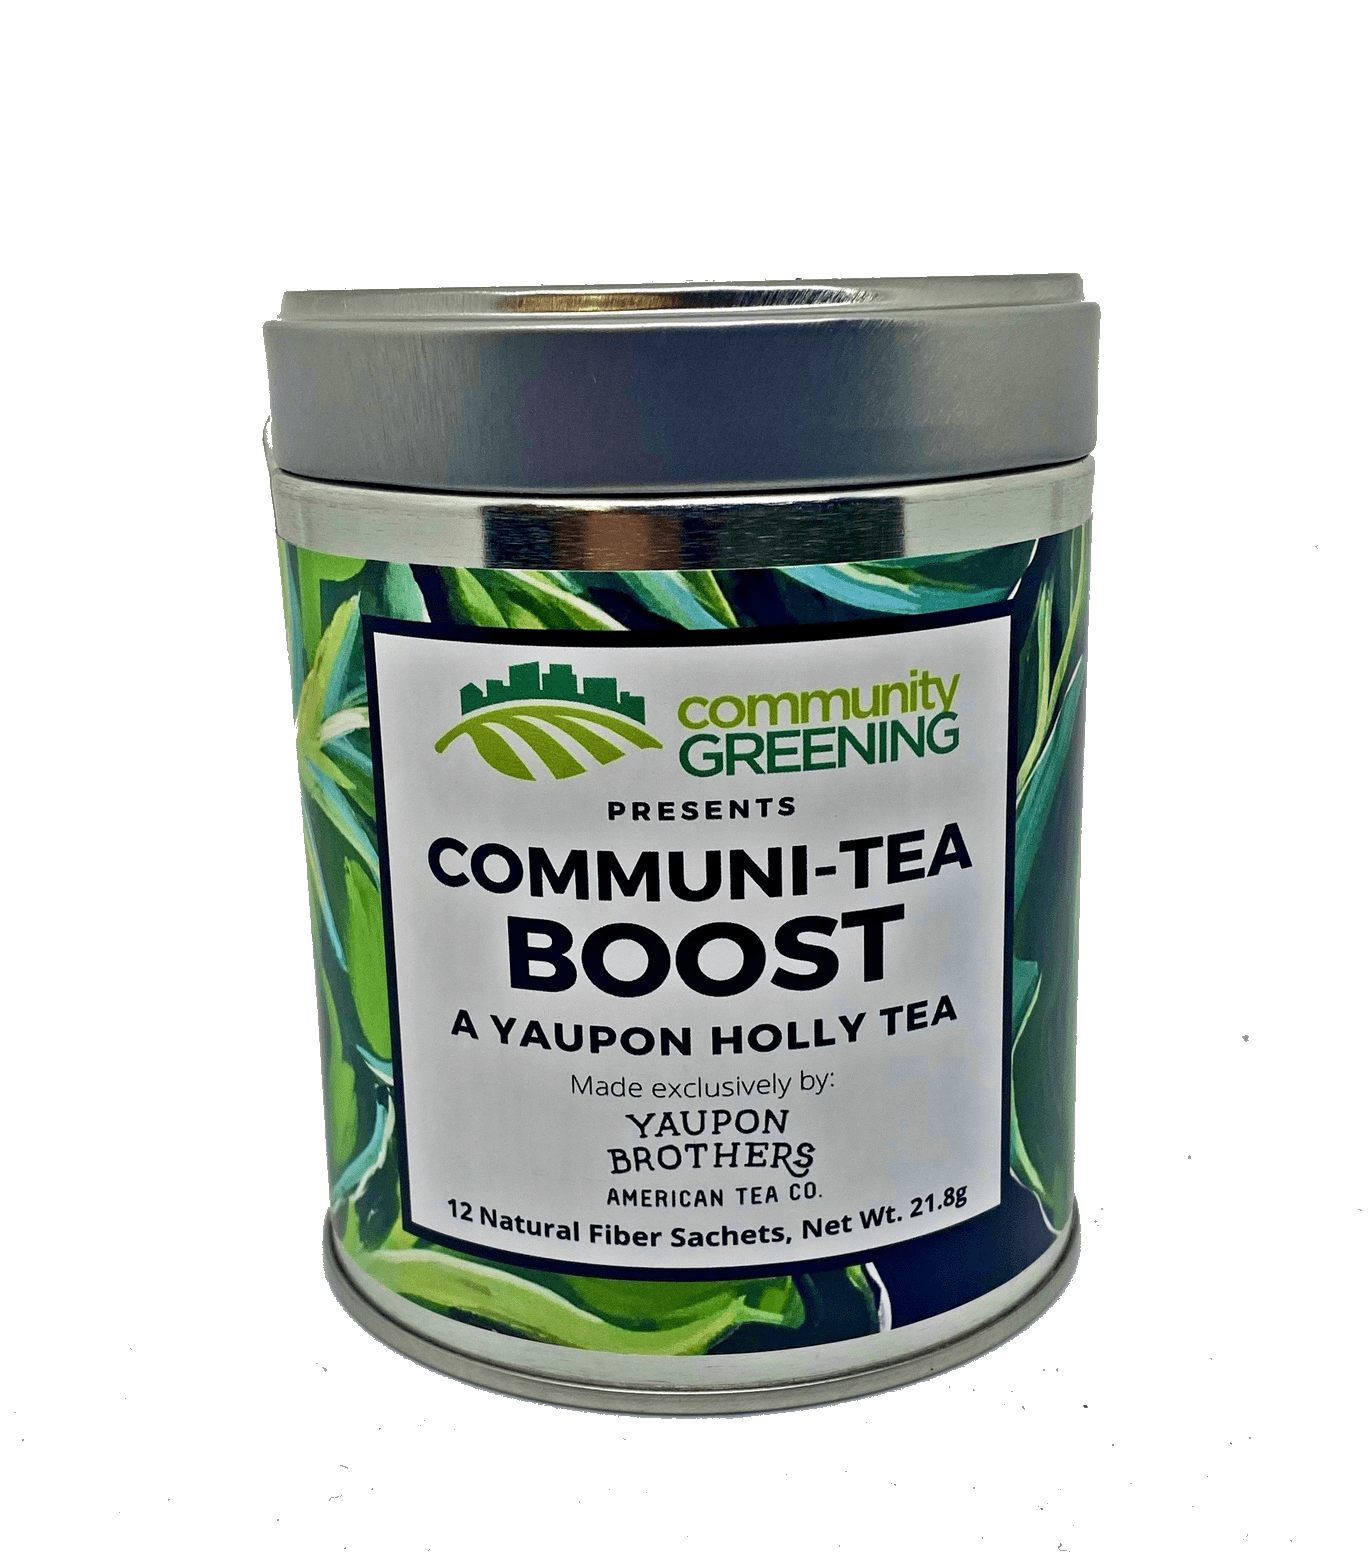 Communi-Tea Boost for Community Greening